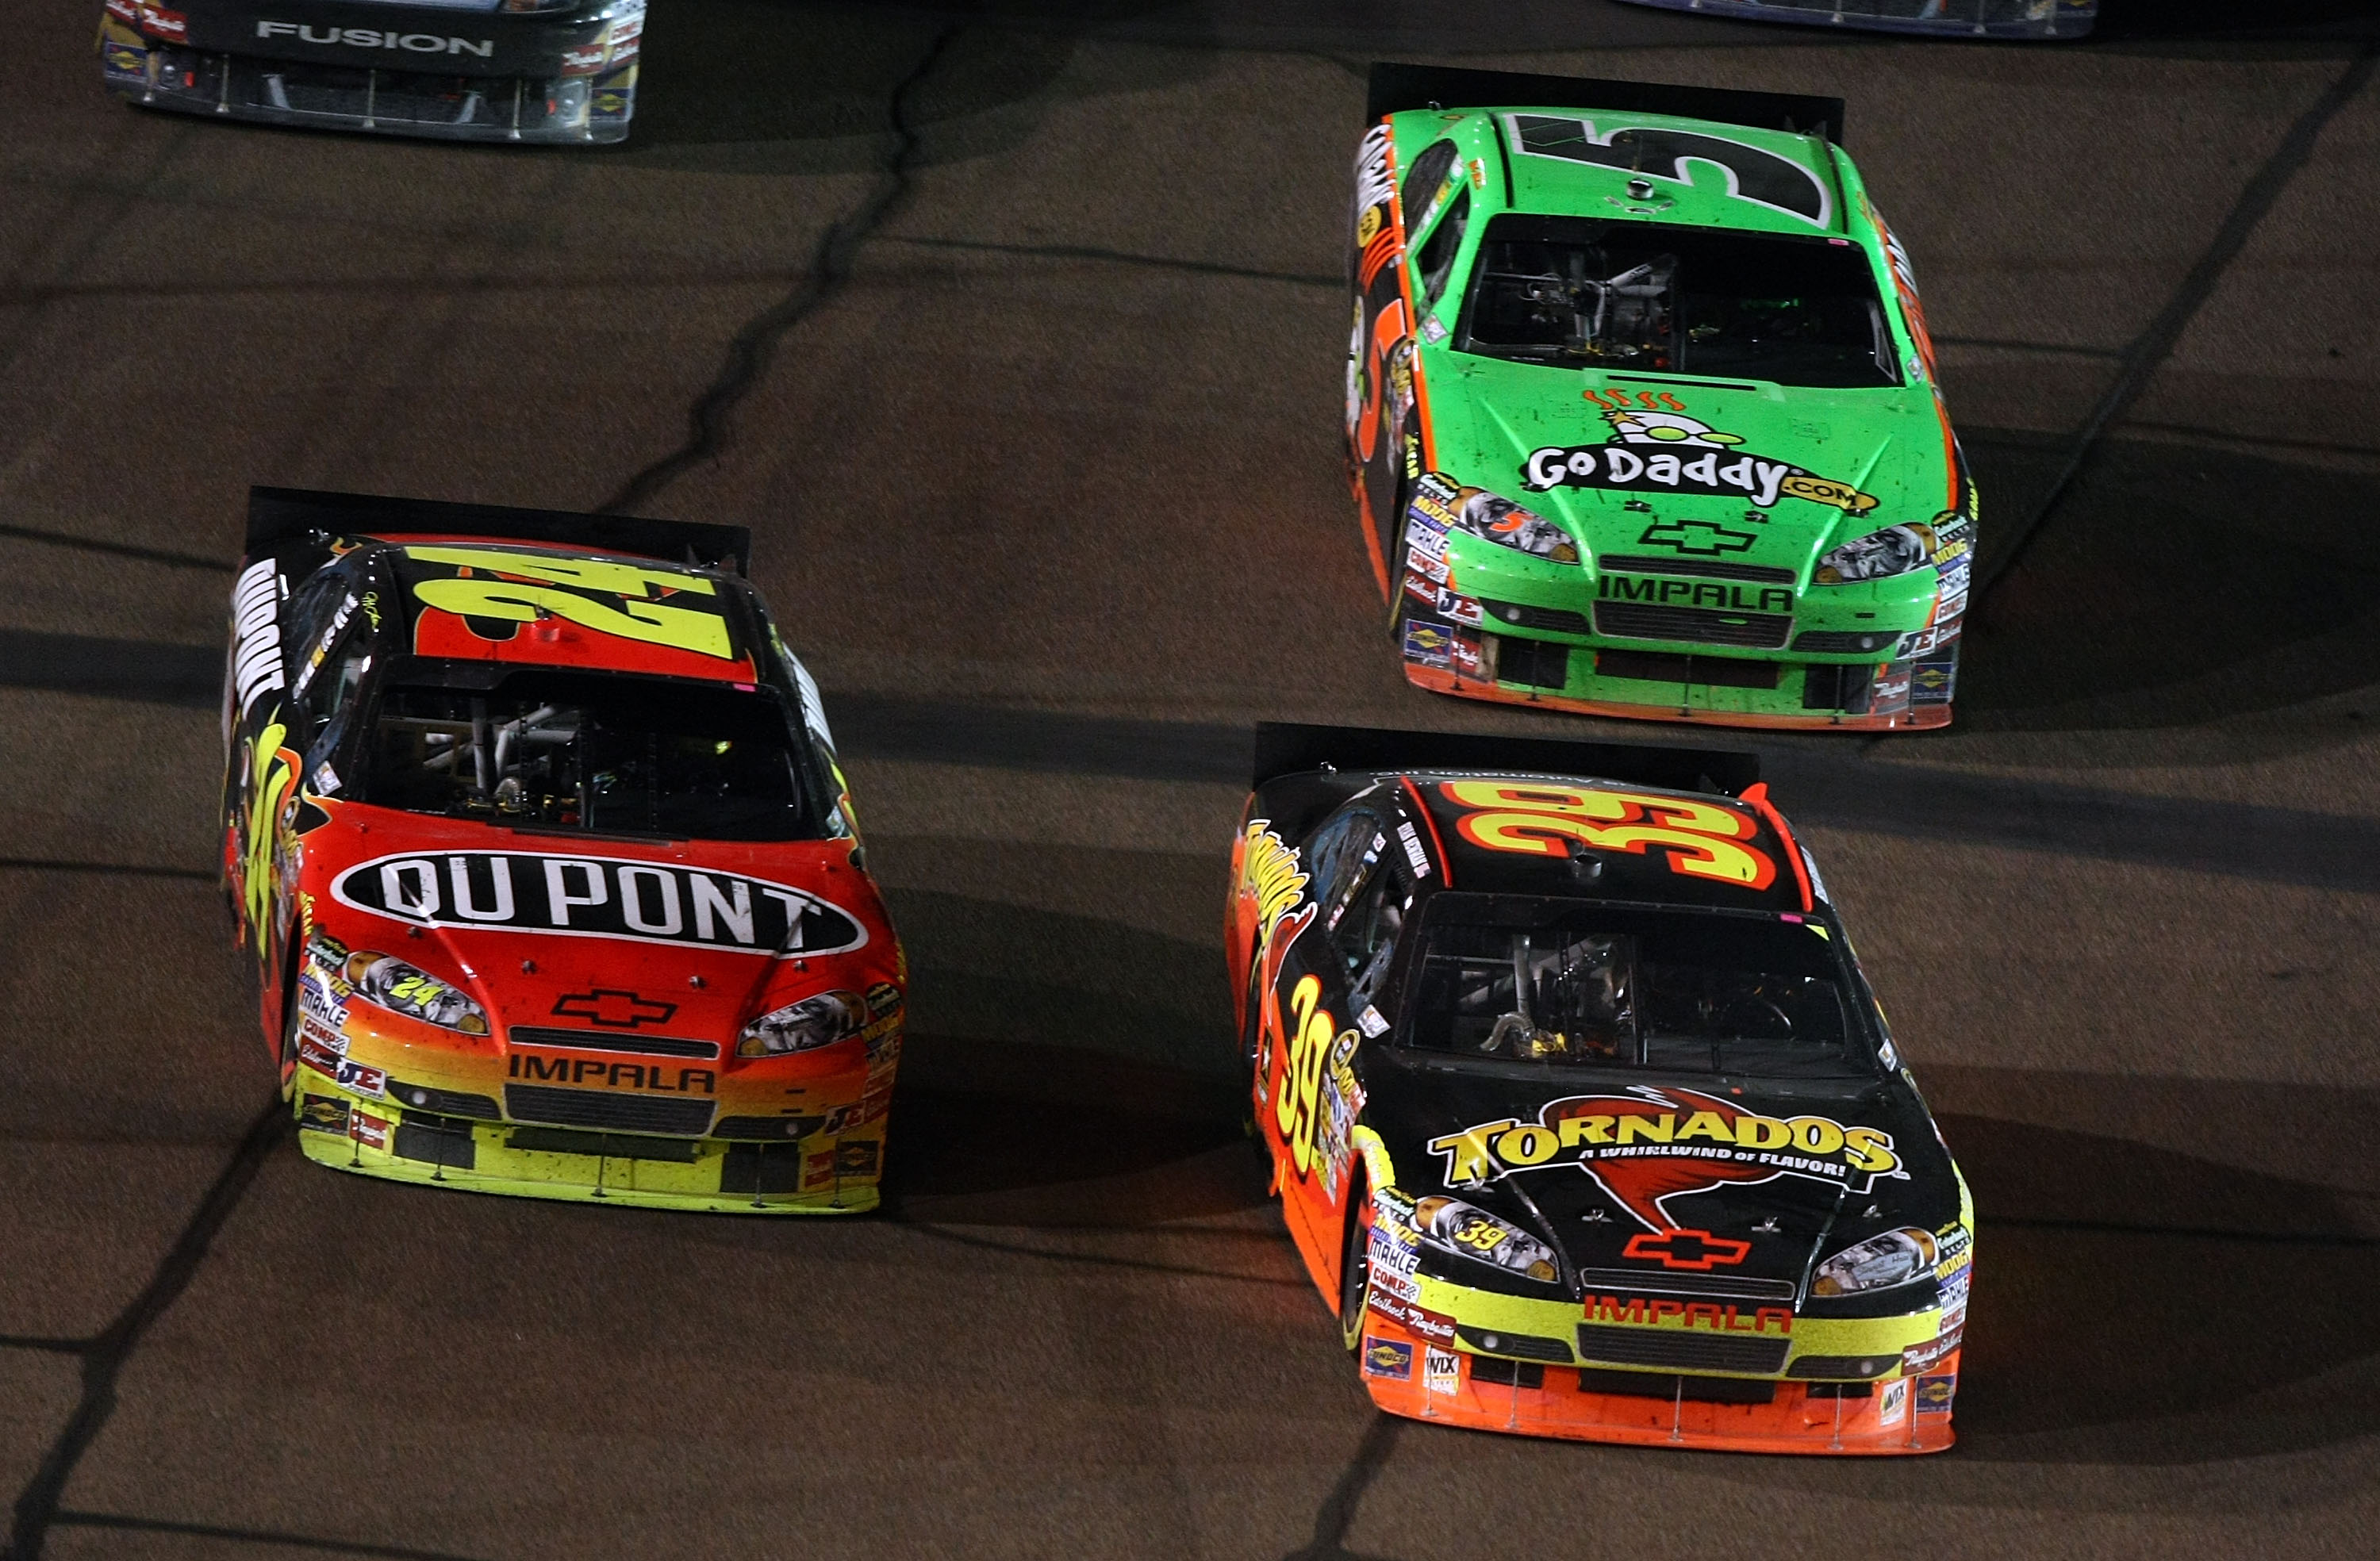 PHOENIX - APRIL 10:  Ryan Newman, driver of the #39 Tornados Chevrolet, drives ahead of Jeff Gordon, driver of the #24 DuPont Chevrolet, on the restart during the NASCAR Sprint Cup Series SUBWAY Fresh Fit 600 at Phoenix International Raceway on April 10,